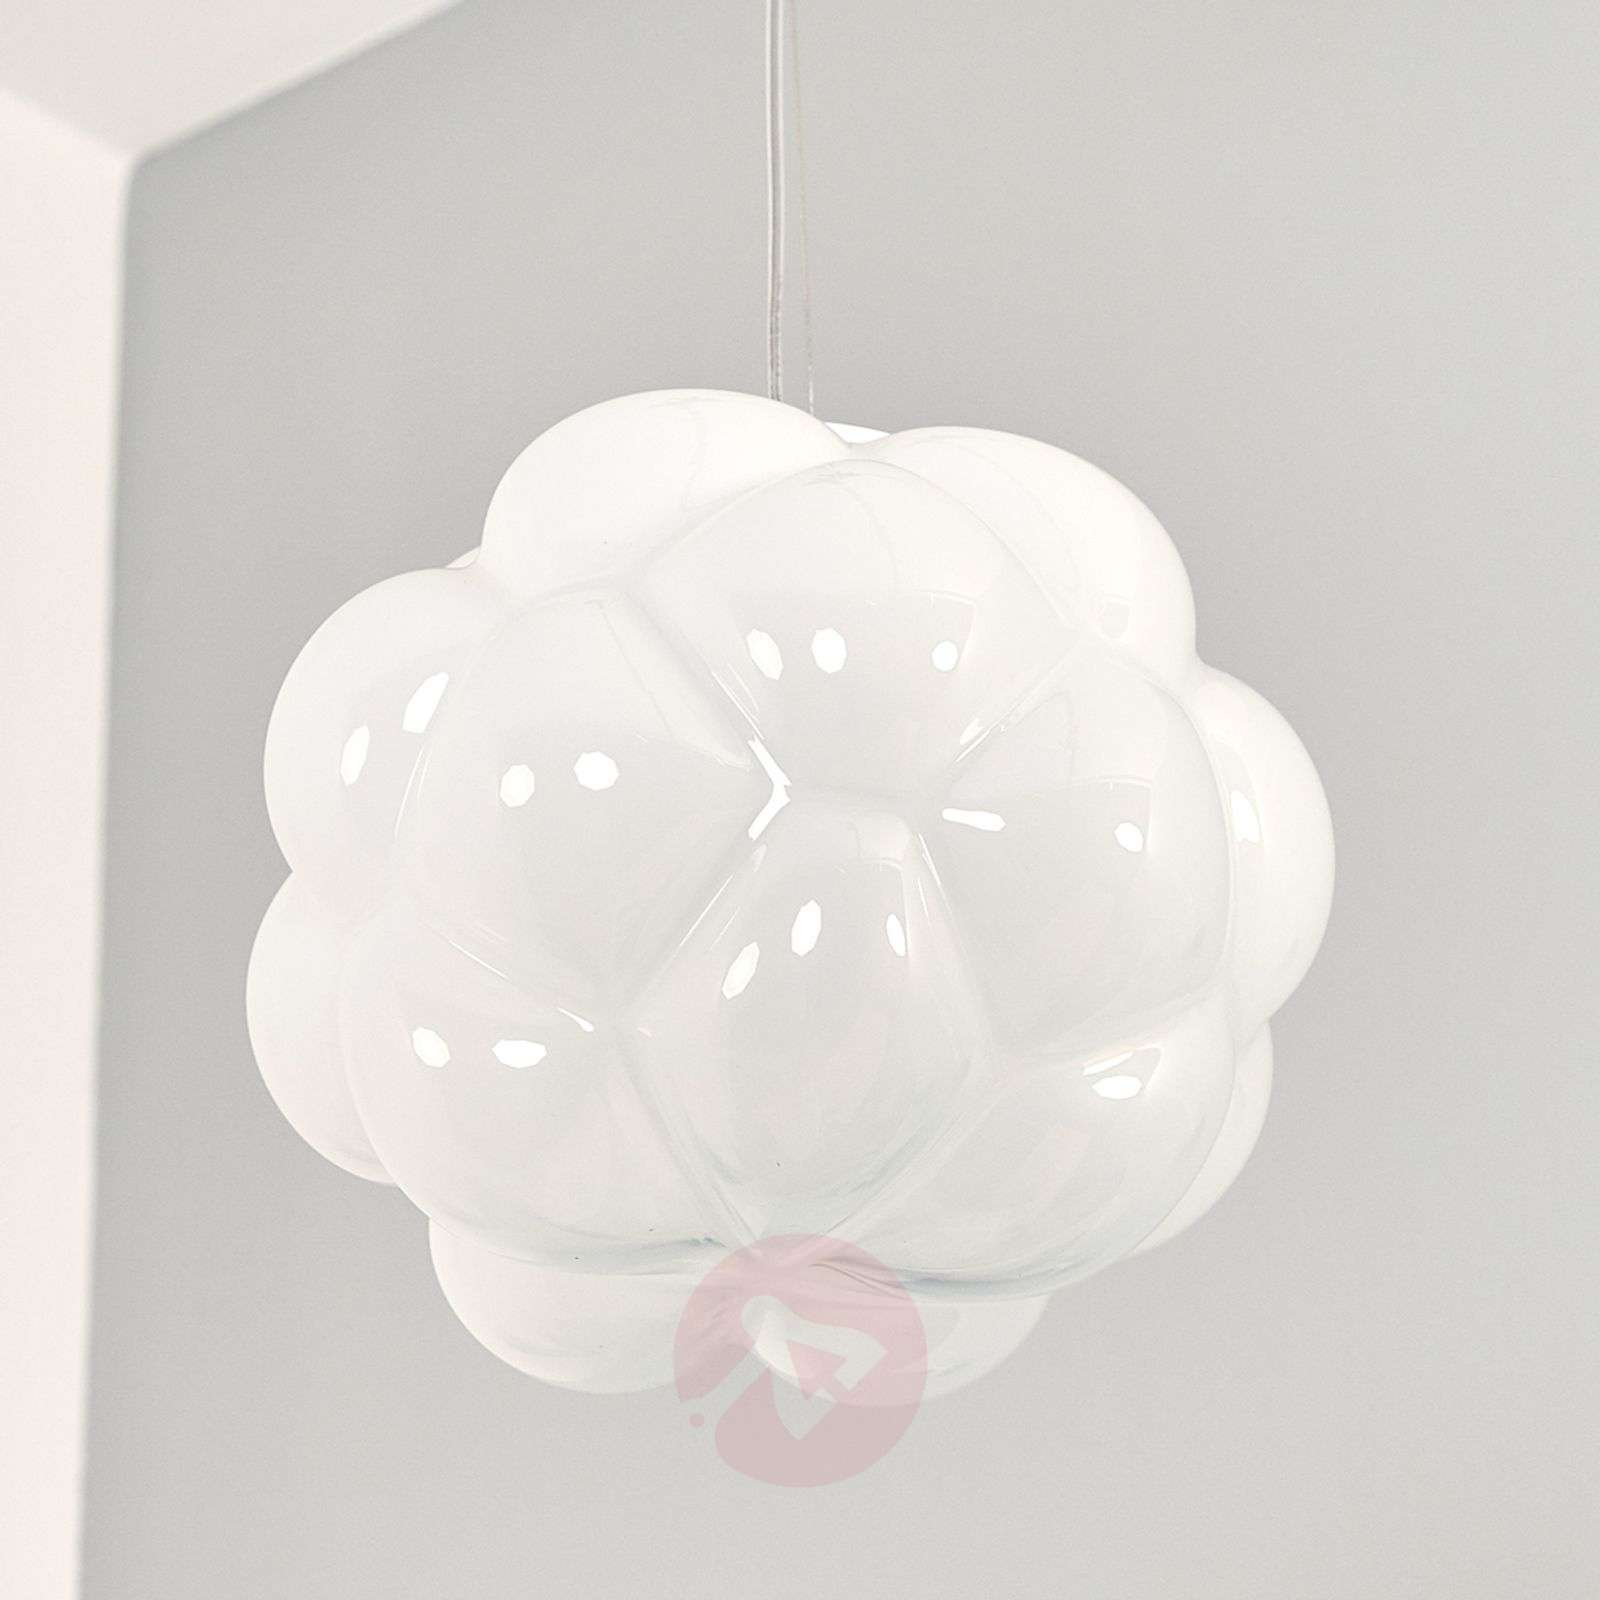 Wolkvormige LED hanglamp Cloudy, 26 cm-3503192-03